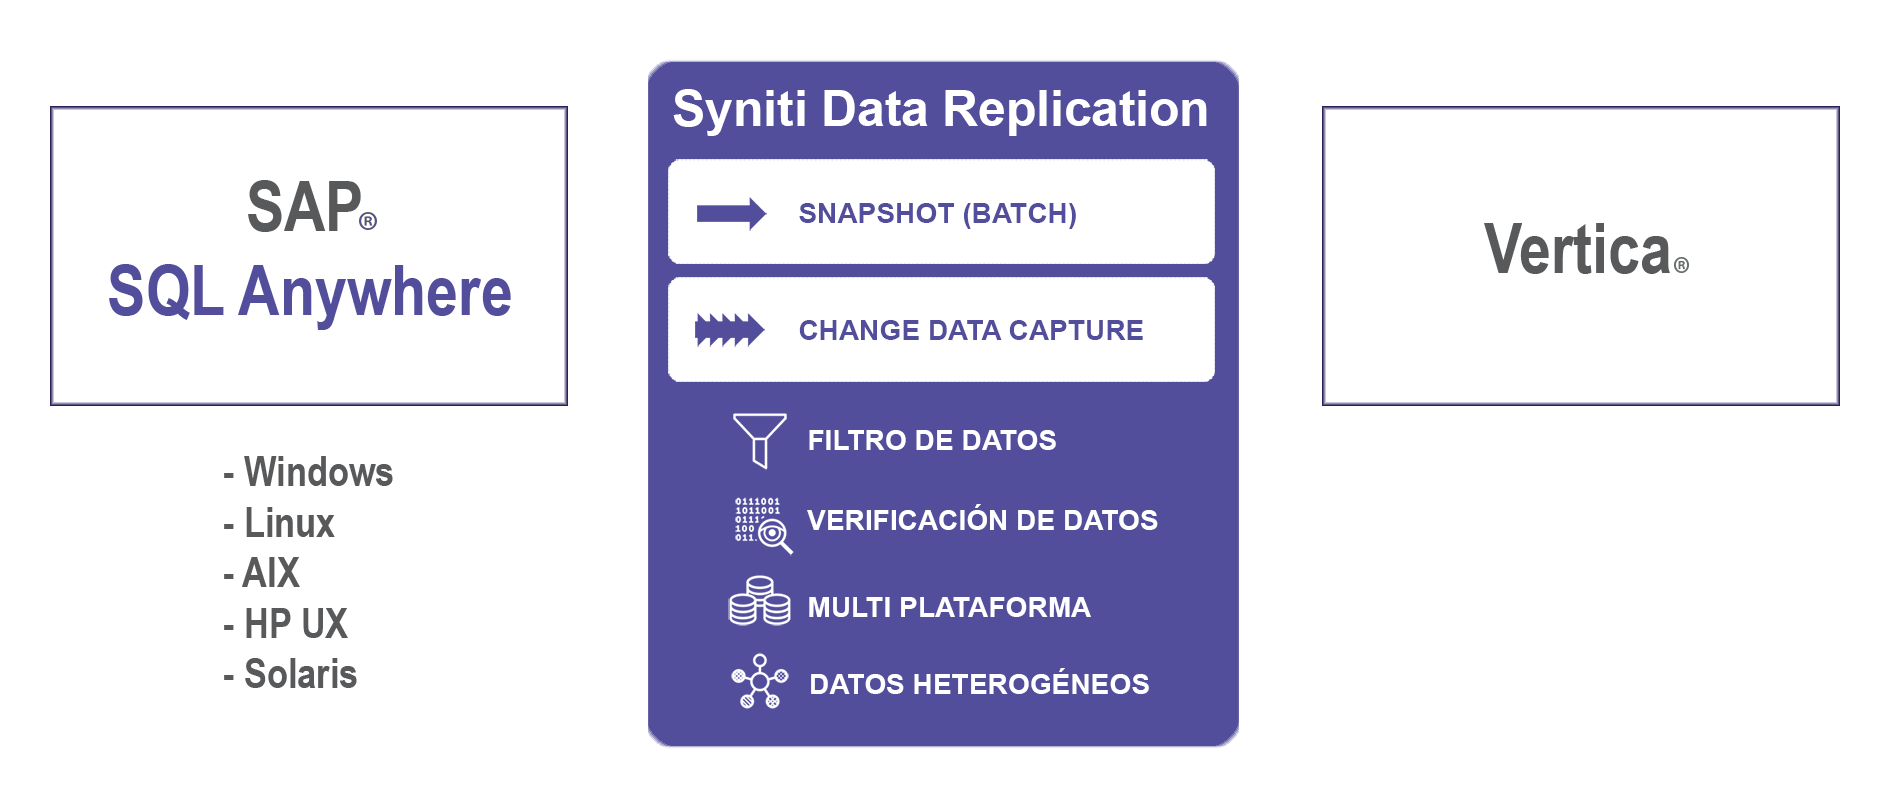 Replicacion de datos SQL Anywhere a Vertica